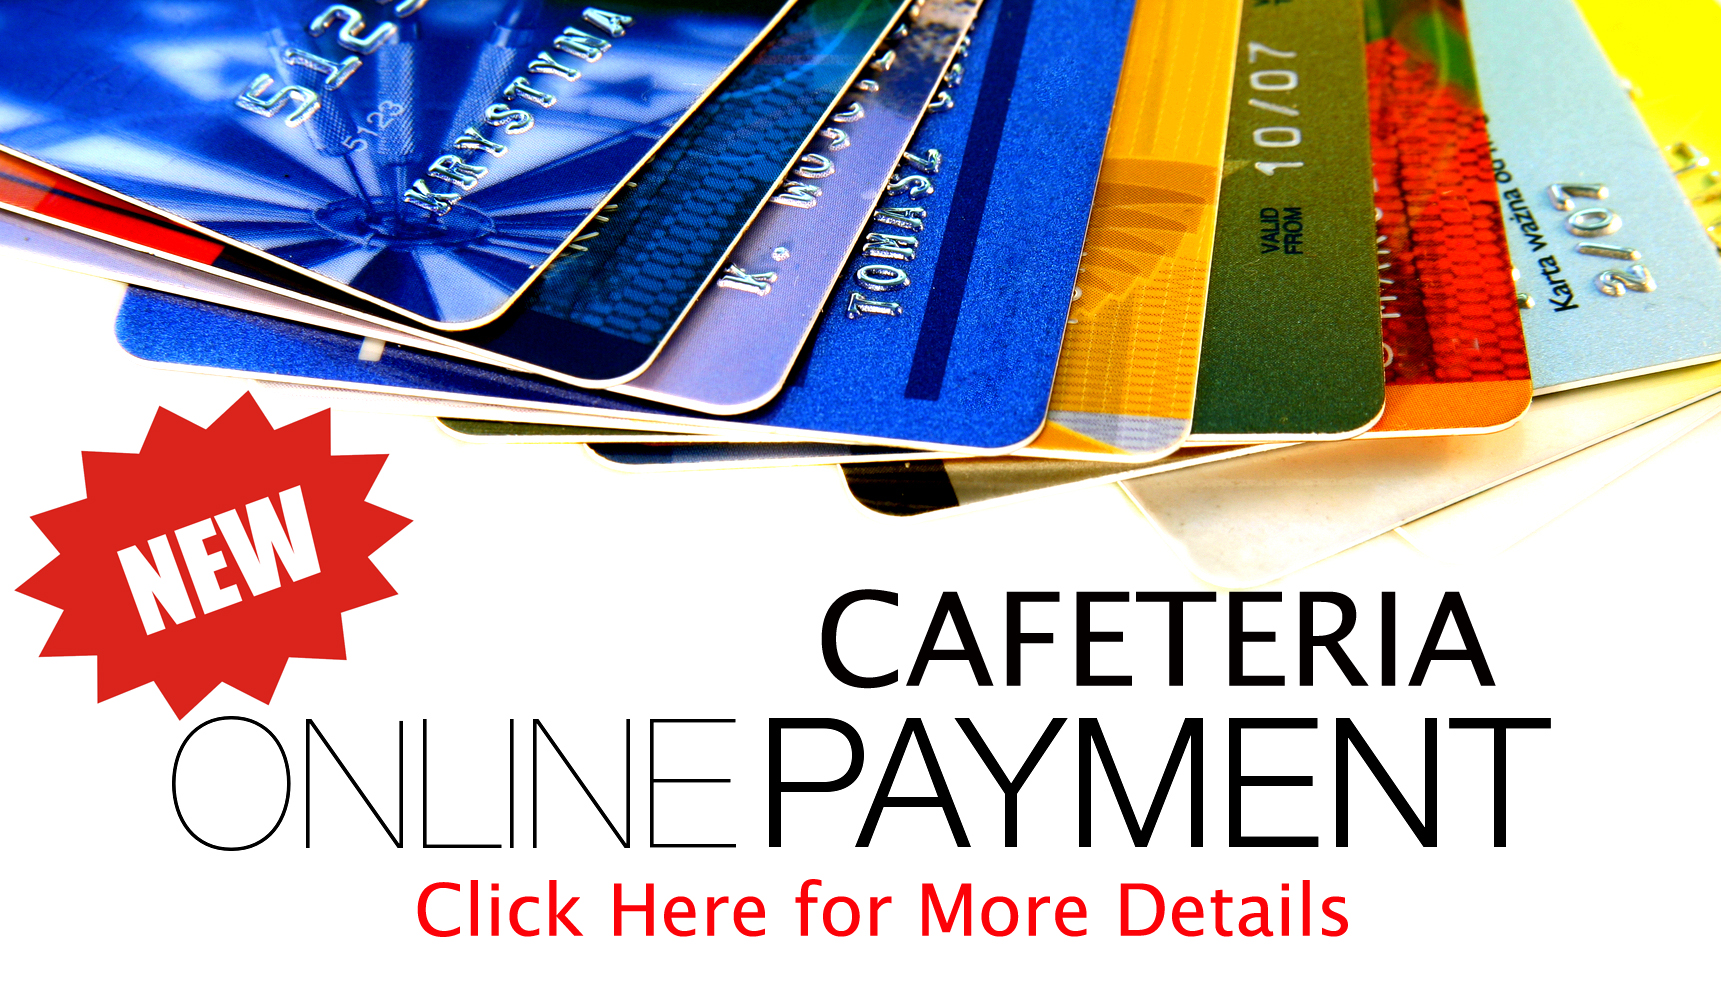 Online Cafeteria Payments Cliffside Park School District